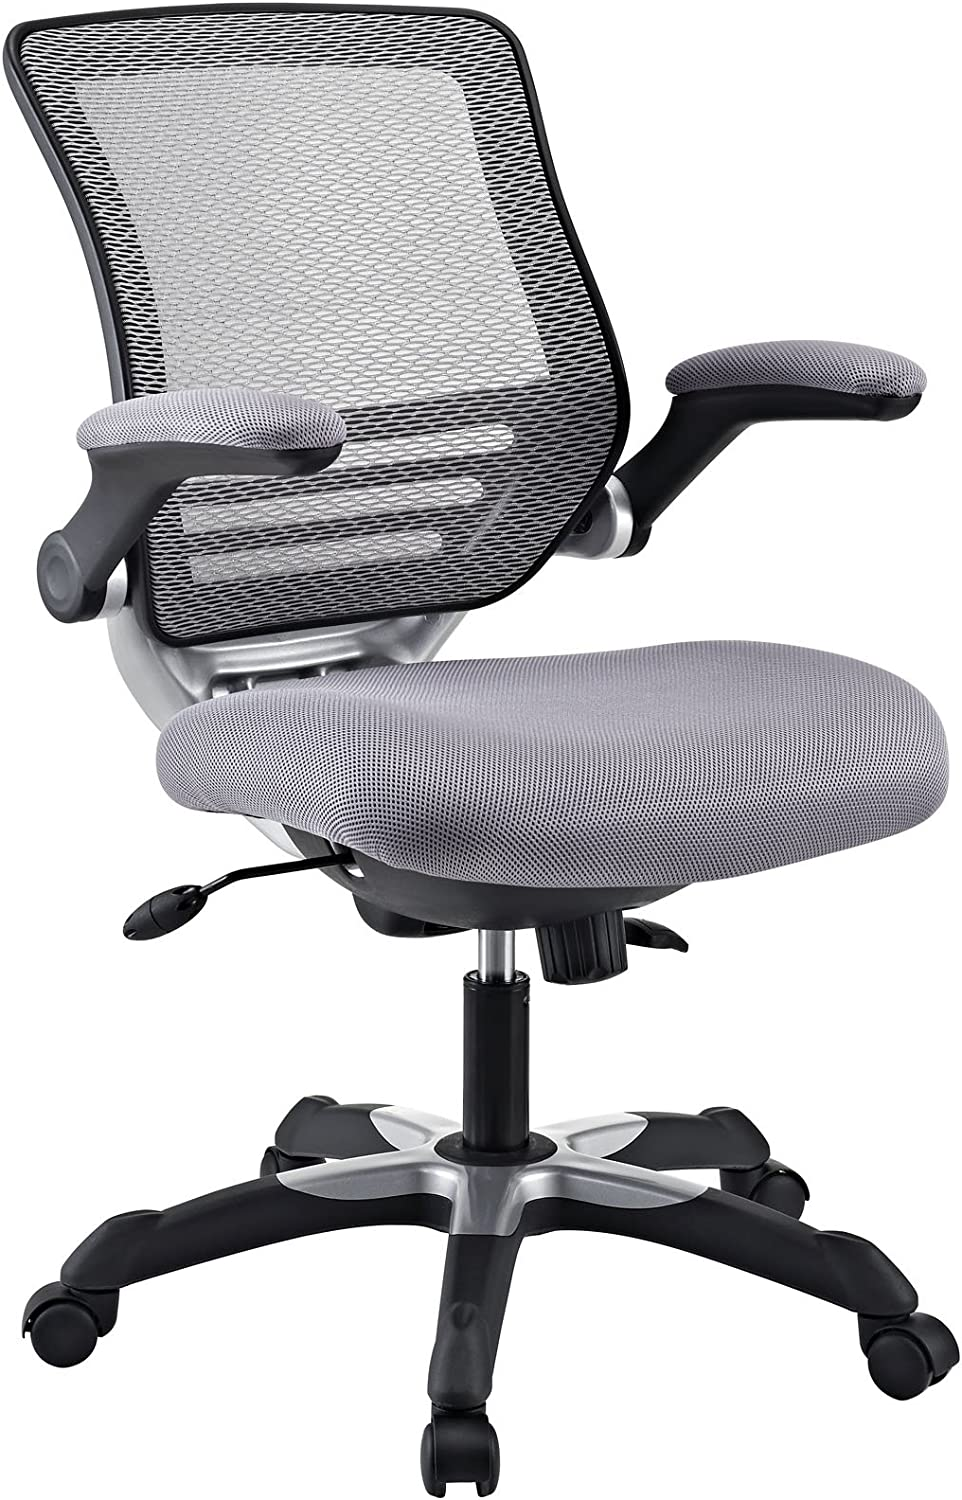 Modway Edge Mesh Back and Mesh Seat Office Chair In Black With Flip-Up Arms - Perfect For Computer Desks